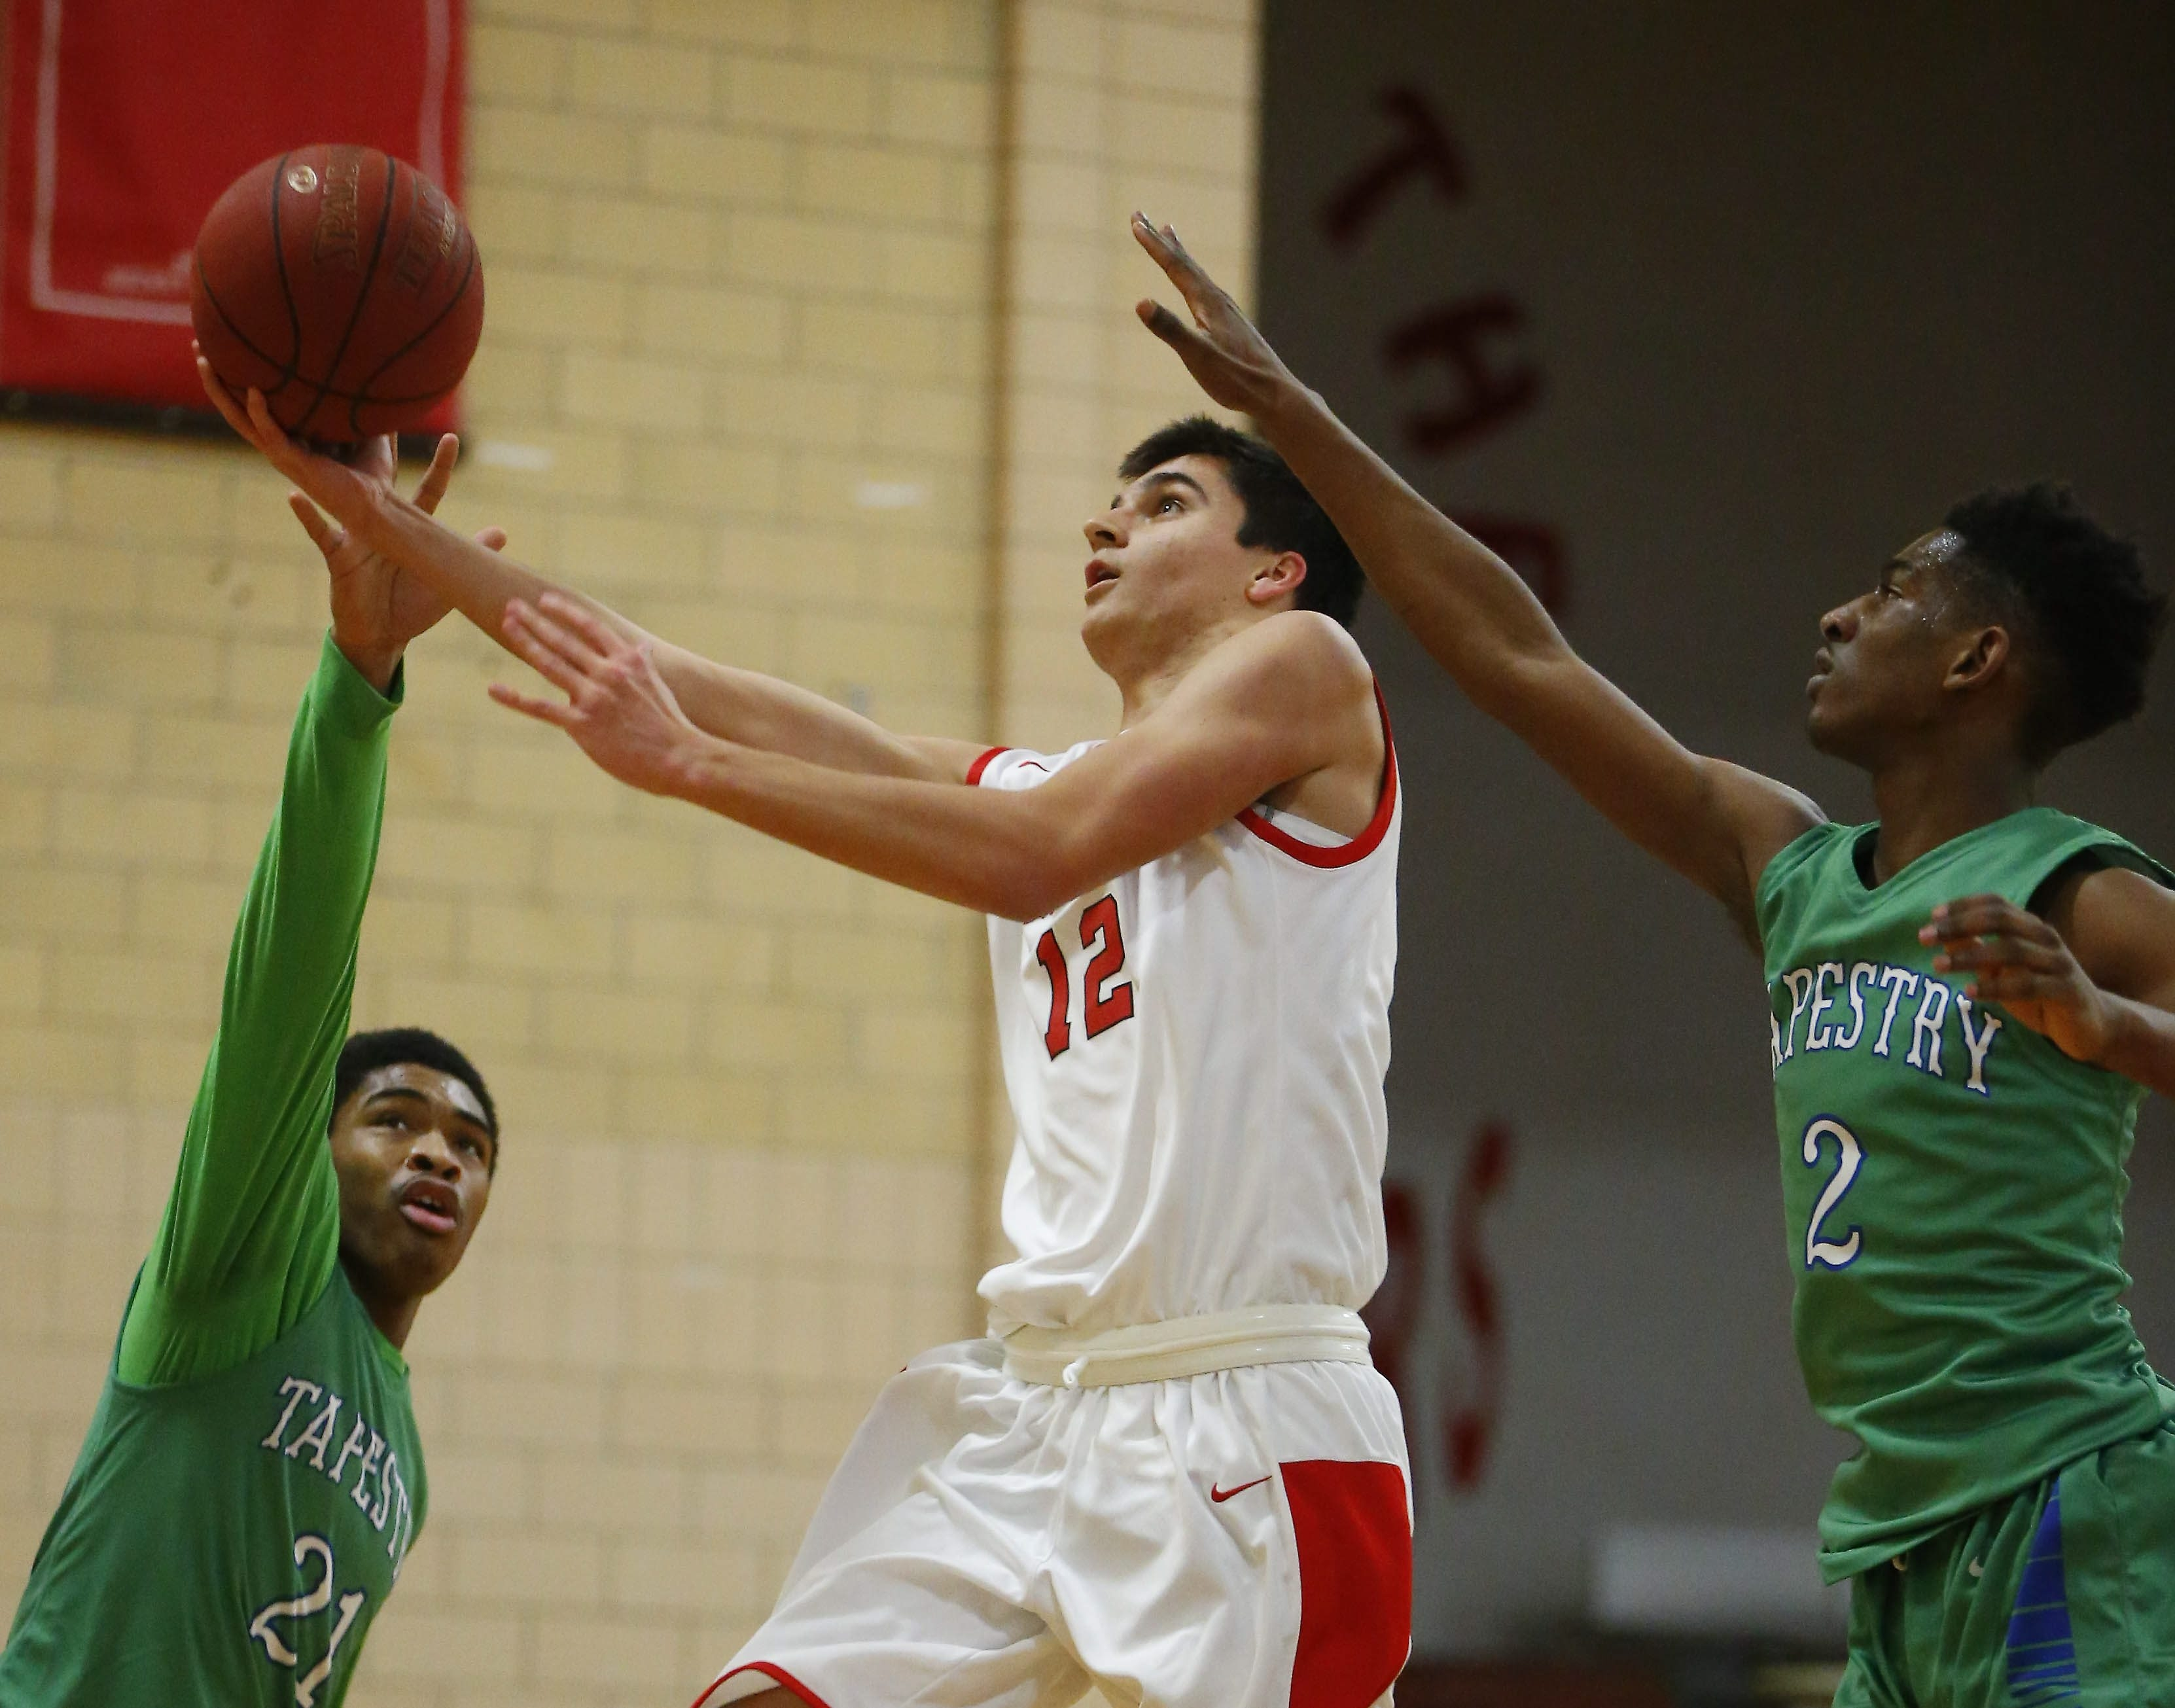 Lancaster's Alex Konst drives to the hoop on Tapestry's Paitwan Jenifer, left, and DaVonte Cunningham, right. Konst had 14 points and 14 rebounds for Lancaster in its 64-60 victory.